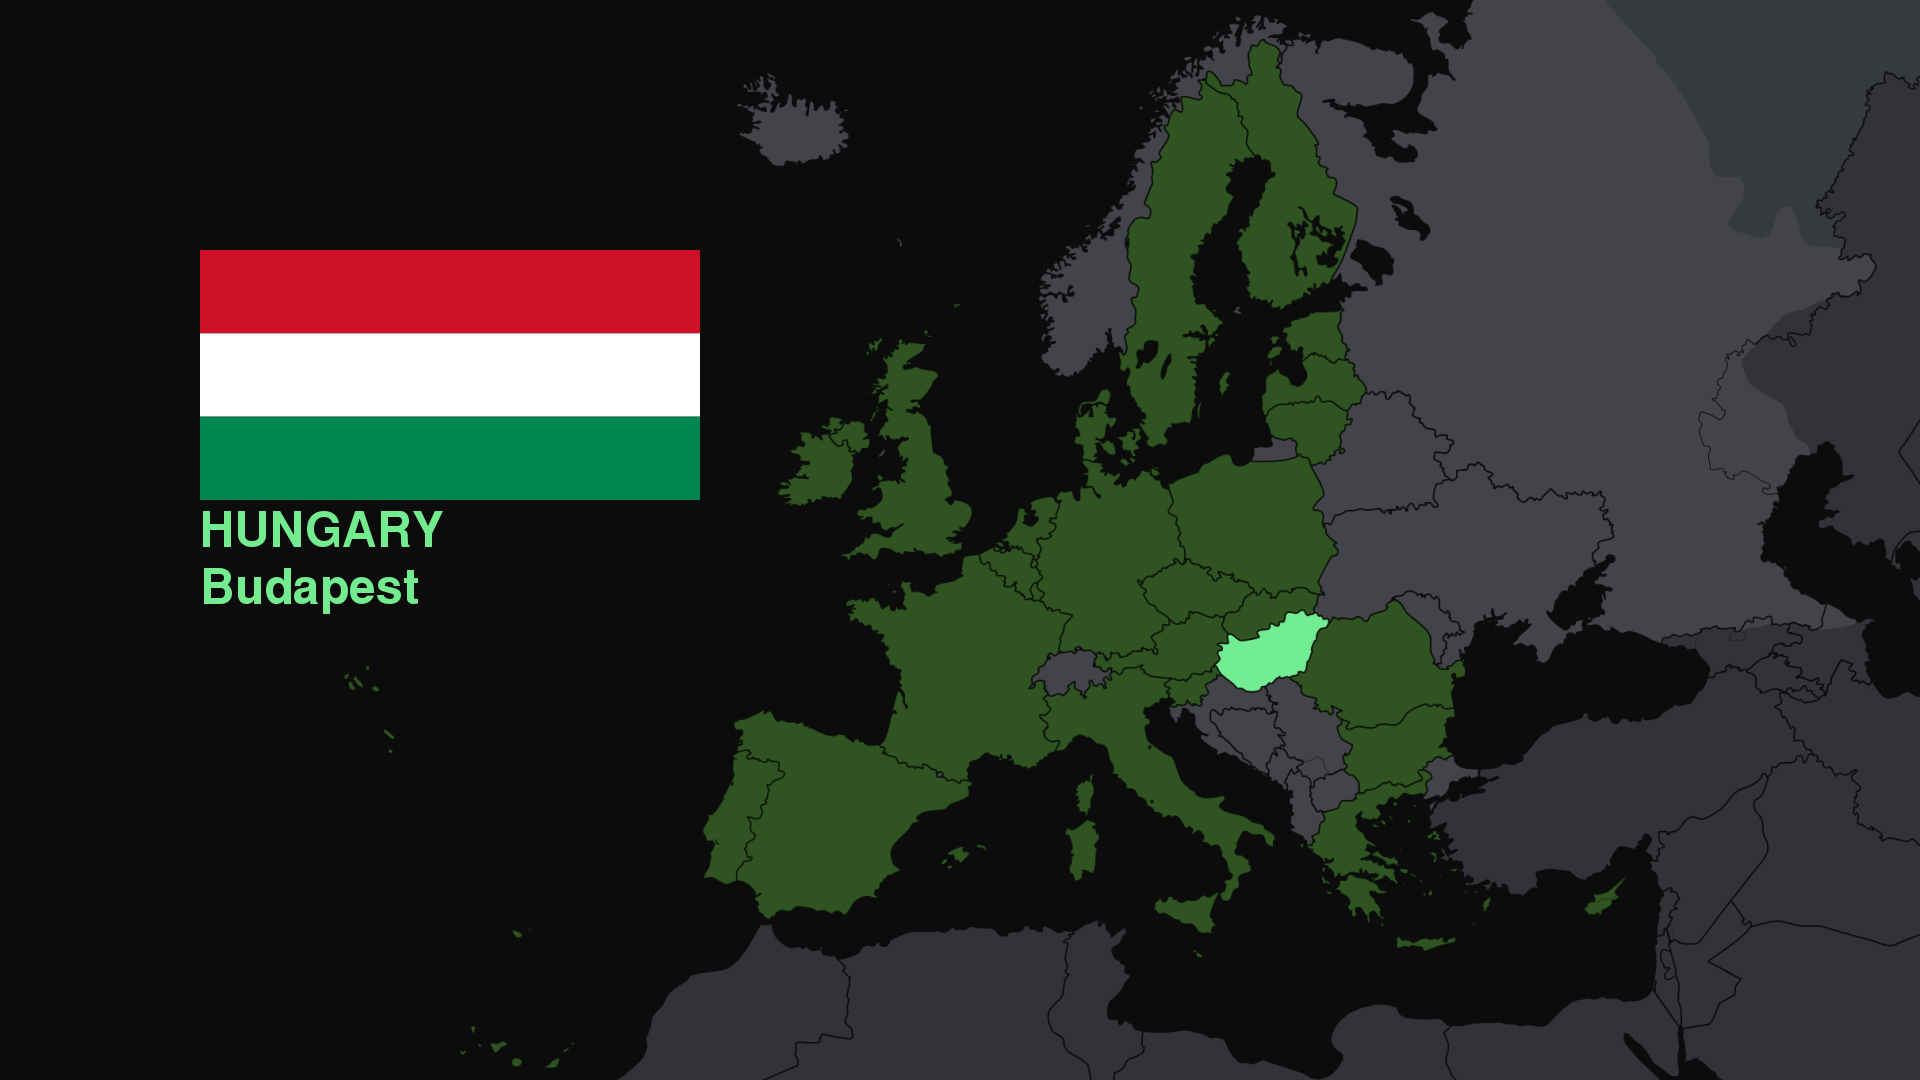 hungary Flags Europe Maps HD Wallpaper